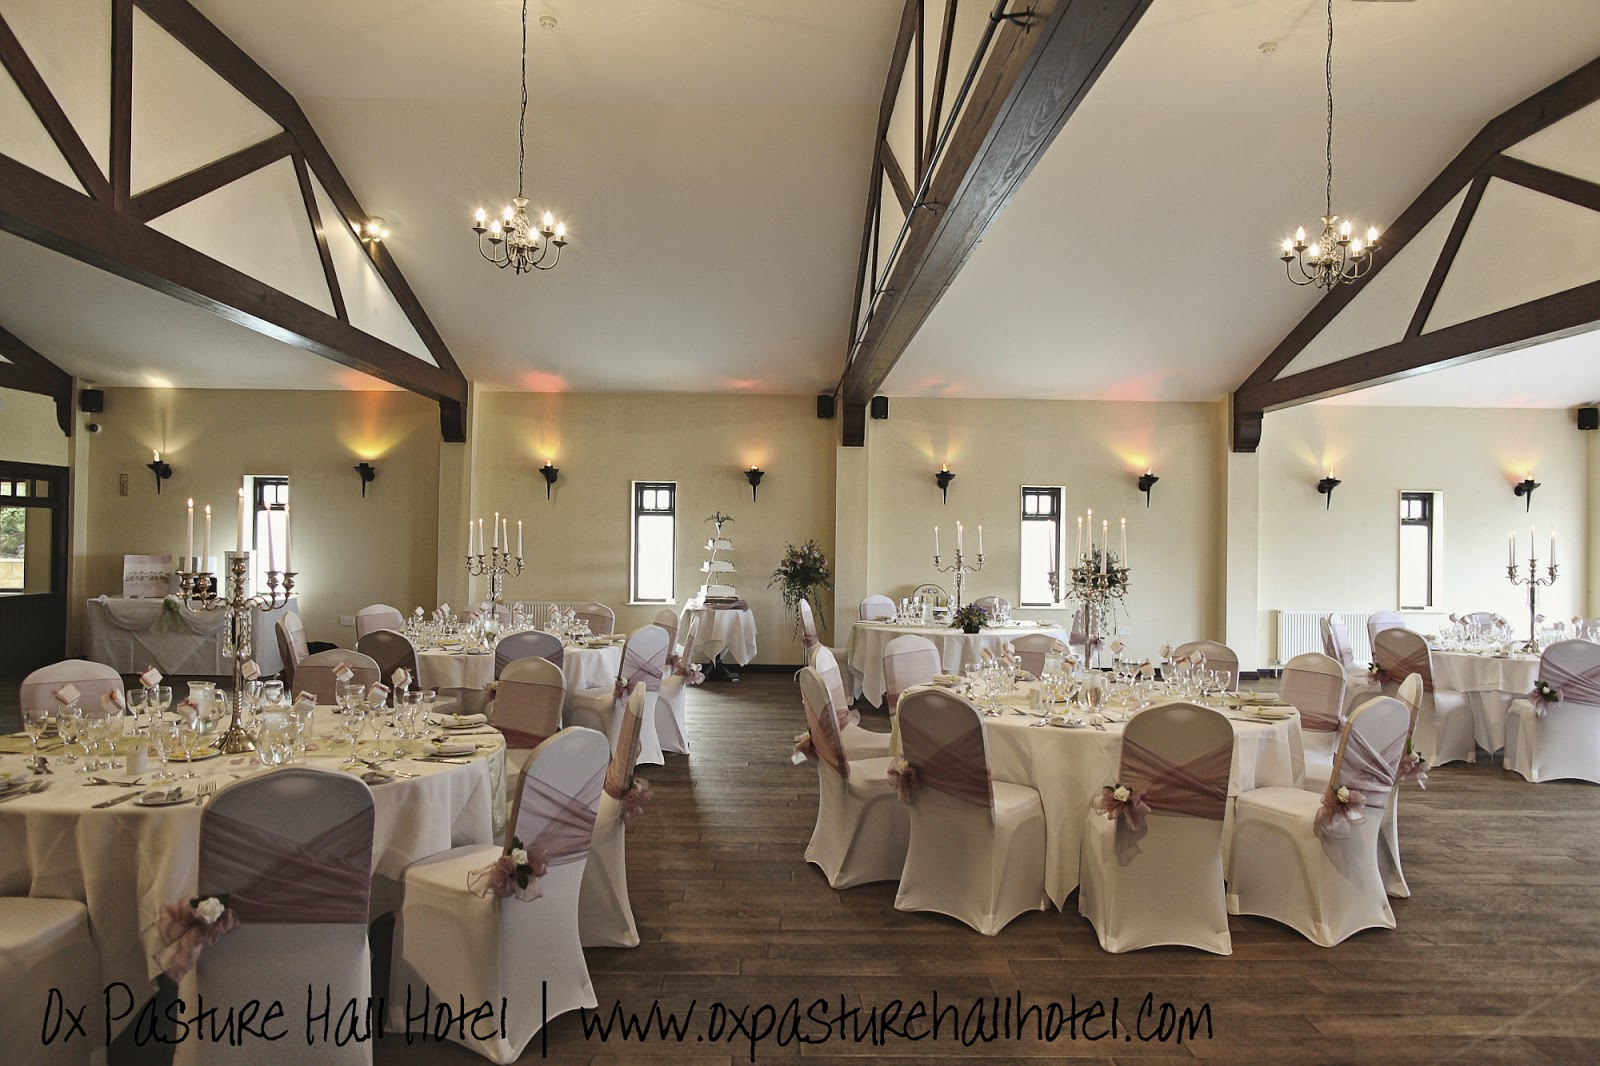 Wedding receptions at Ox Pasture Hall Hotel | Anyonita-nibbles.co.uk